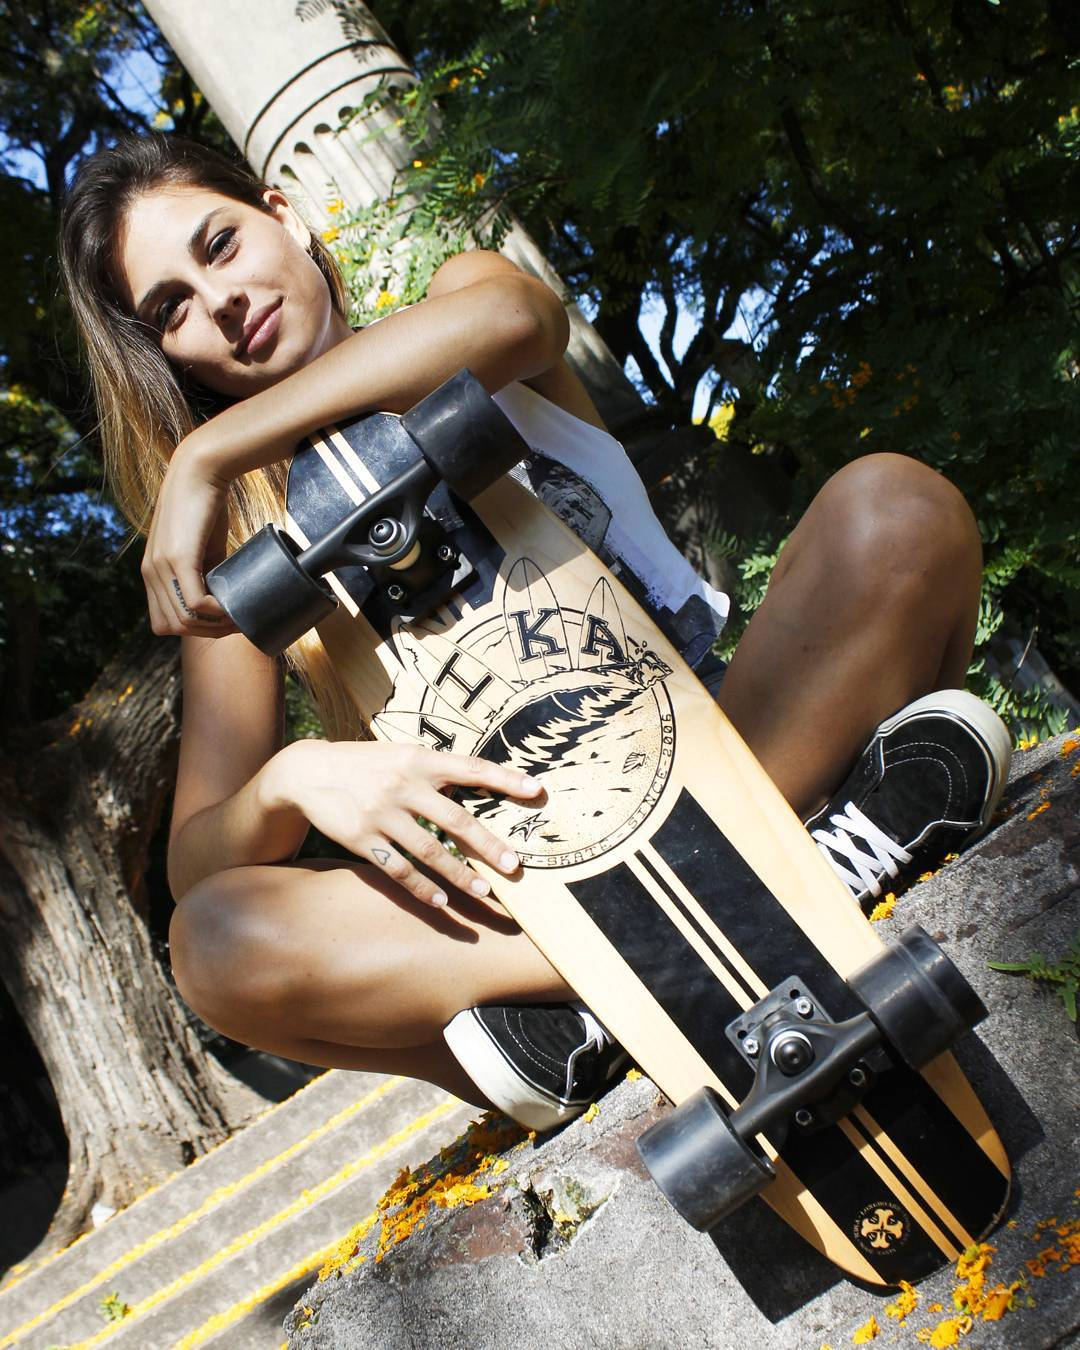 El Mini Cruiser que estabas buscando... ¡WIKA BEACHBREAK!